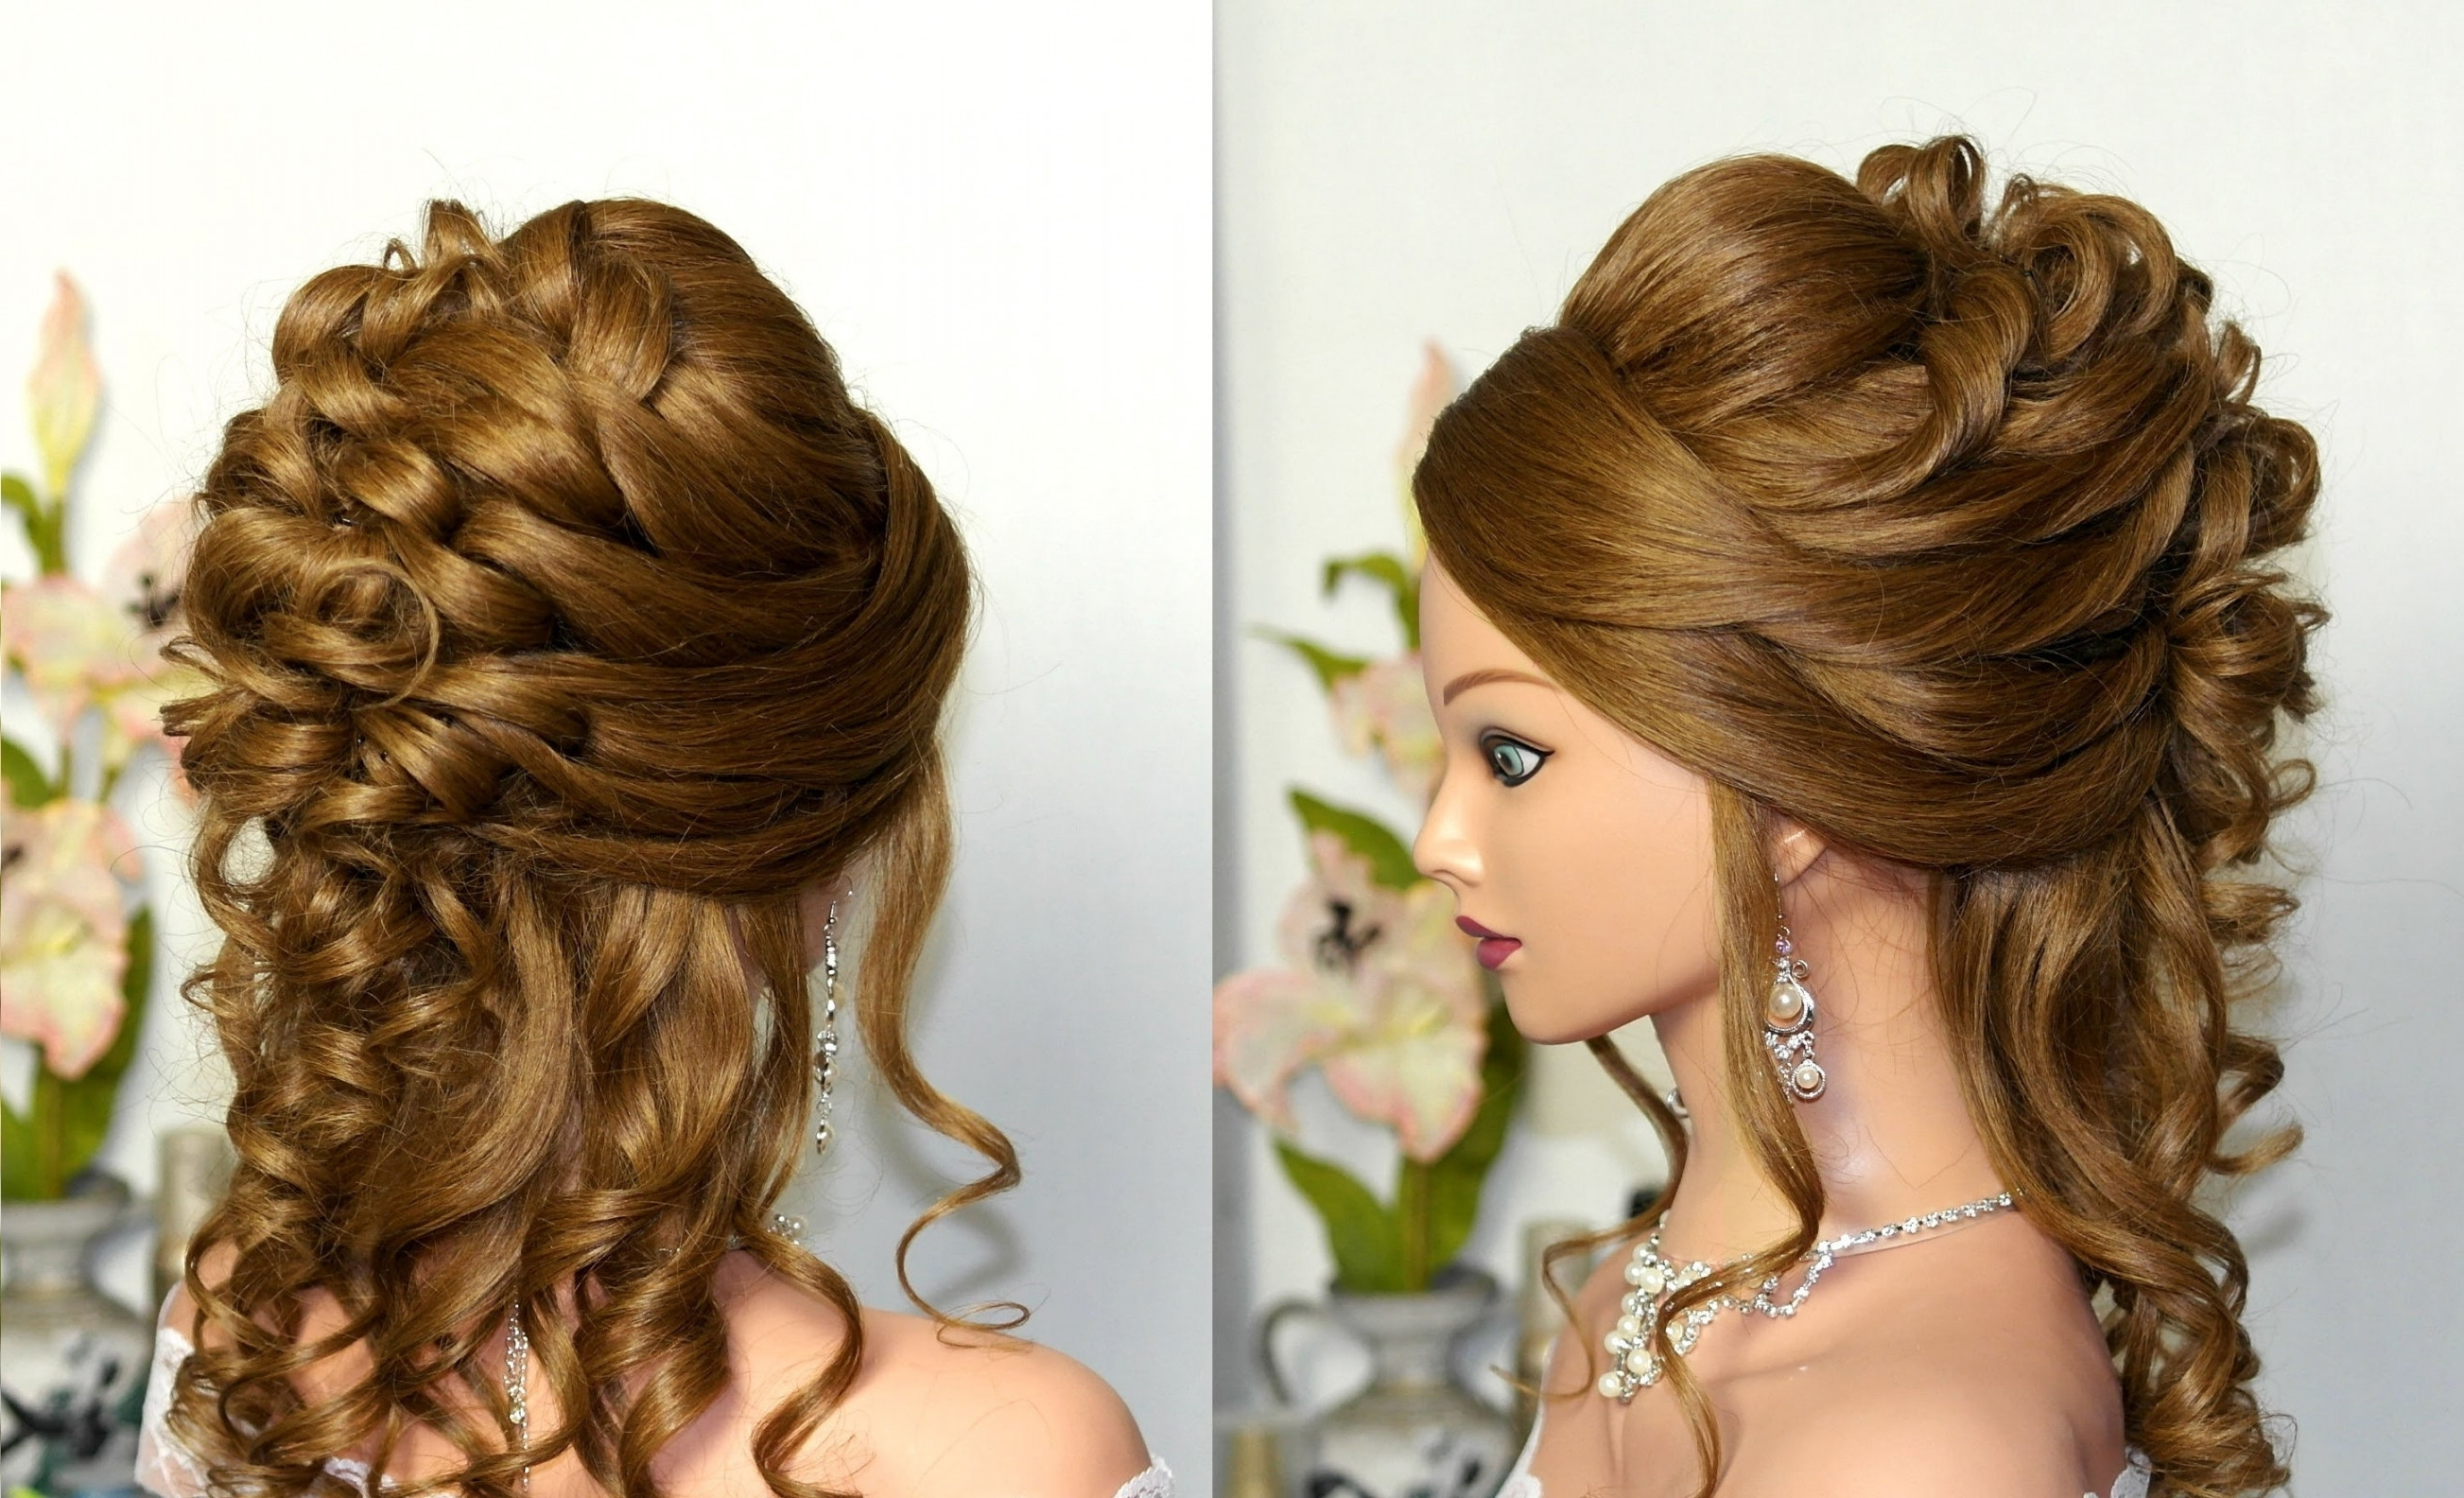 Fancy Hairstyles For Long Hair Updo Wedding Updos Hairstyle Formal With Regard To Fancy Updo Hairstyles (View 10 of 15)